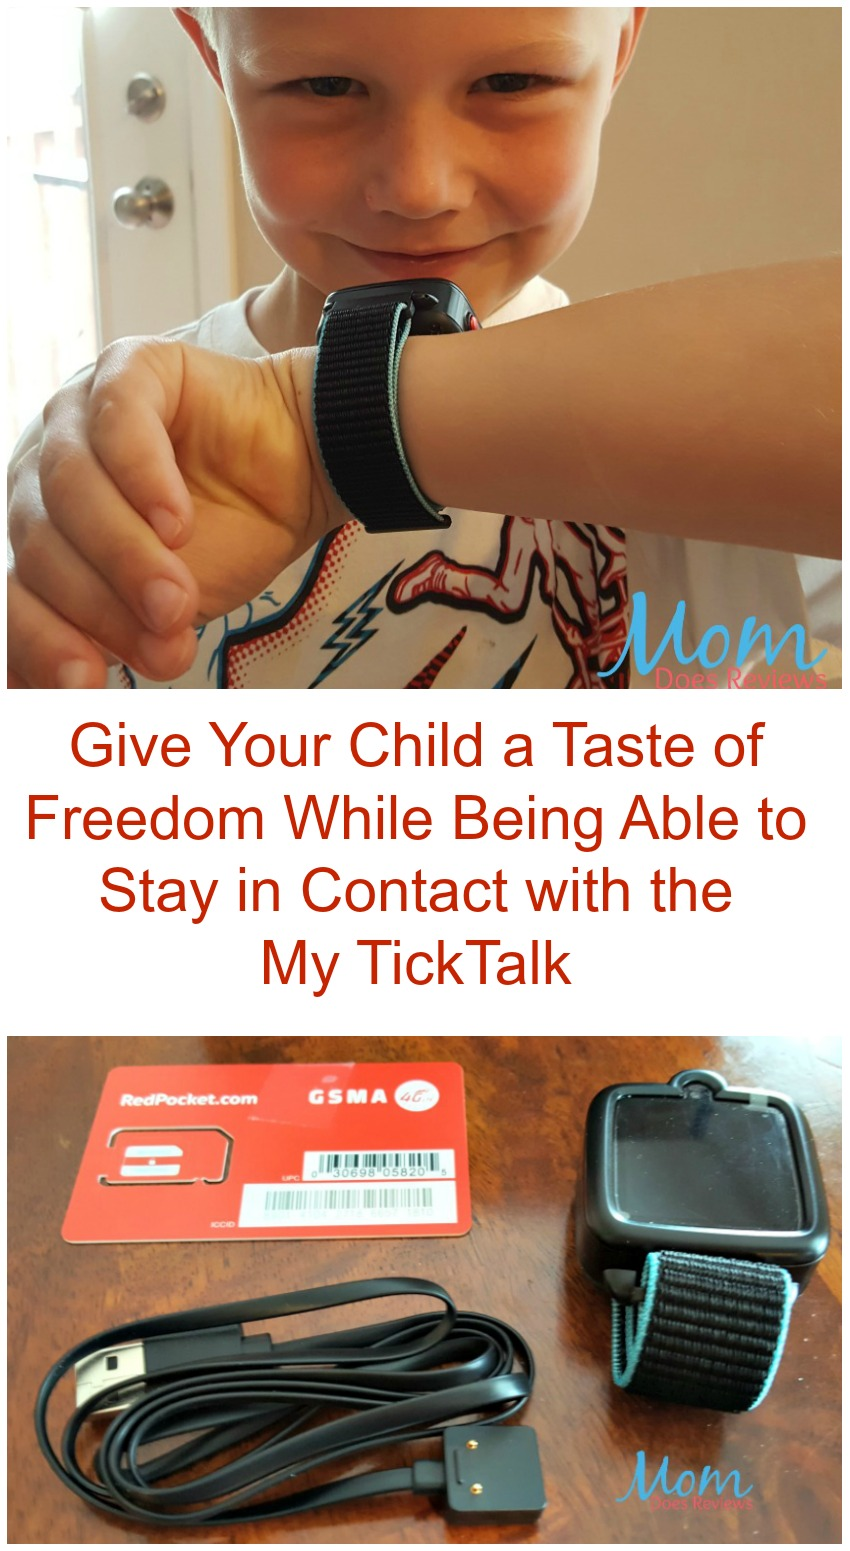 Give Your Child a Taste of Freedom While Being Able to Stay in